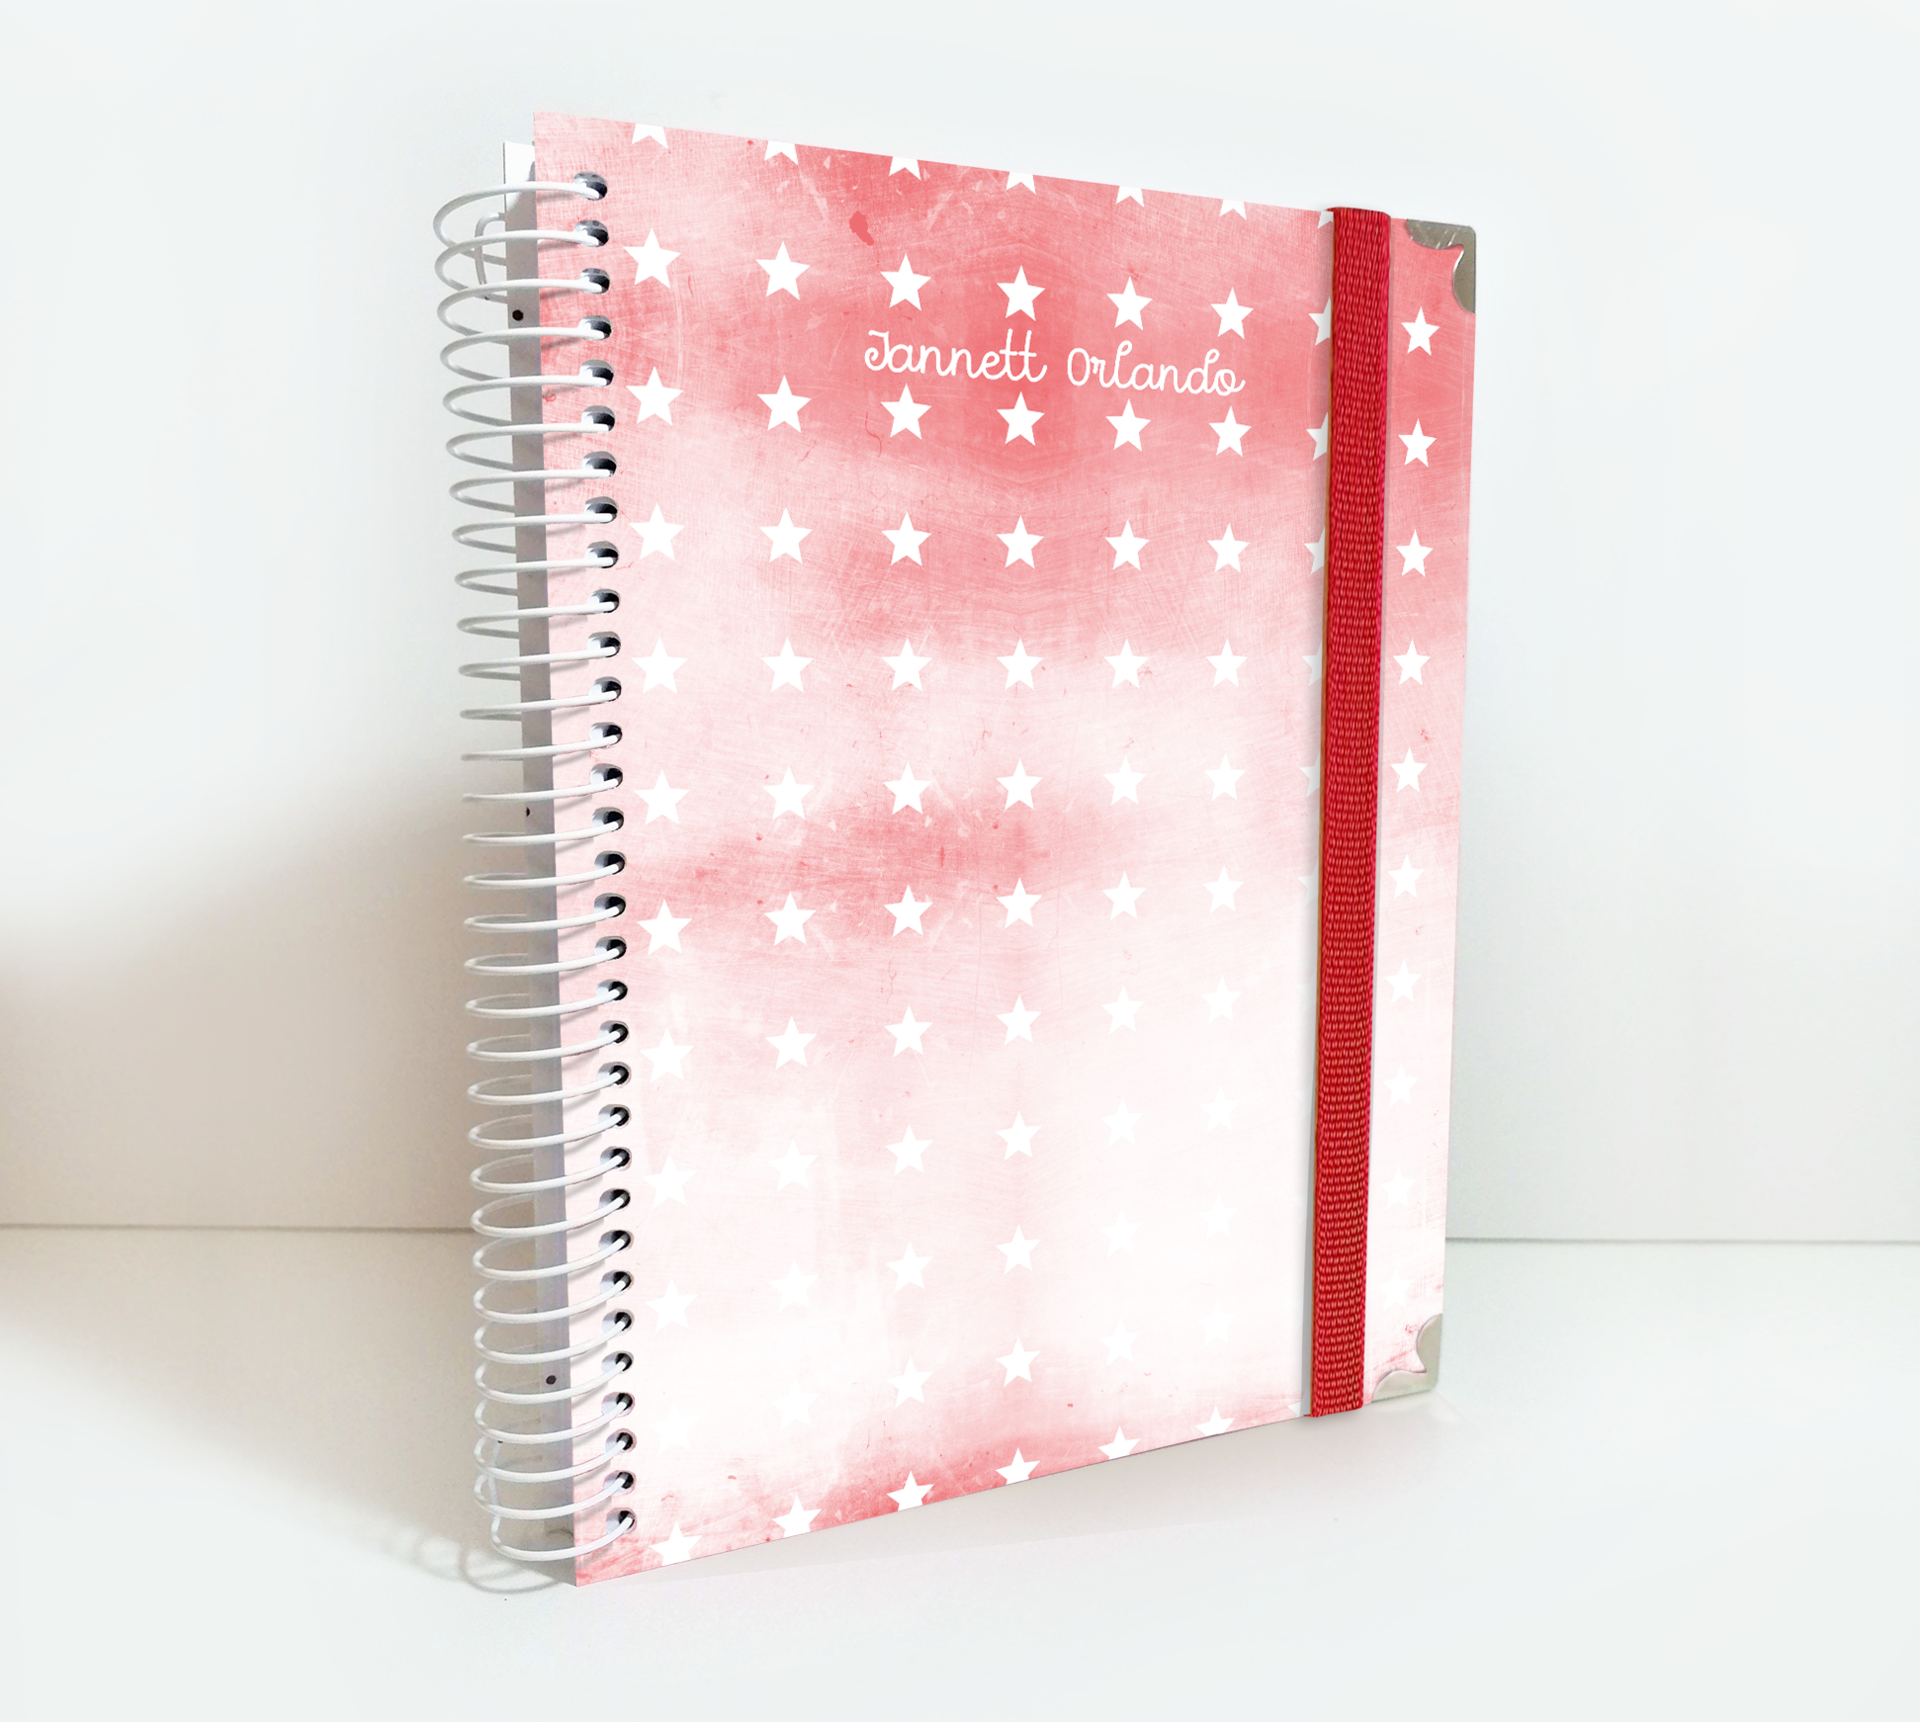 Kasefazem Weekly Planner for 2020/21 Daily Weekly and Monthly Scheduling